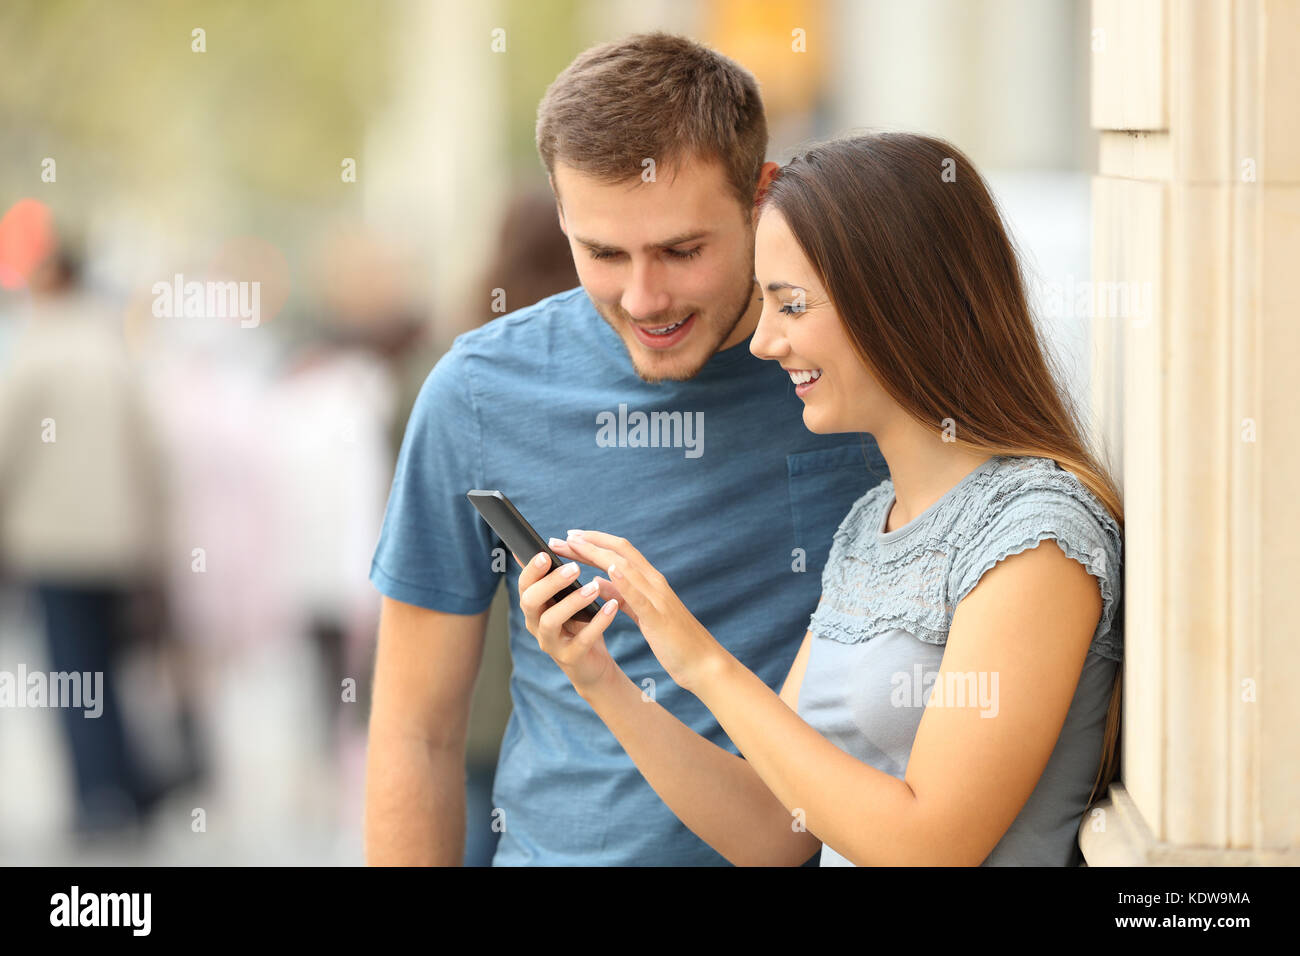 Happy casual couple checking content in a smart phone standing on the street - Stock Image